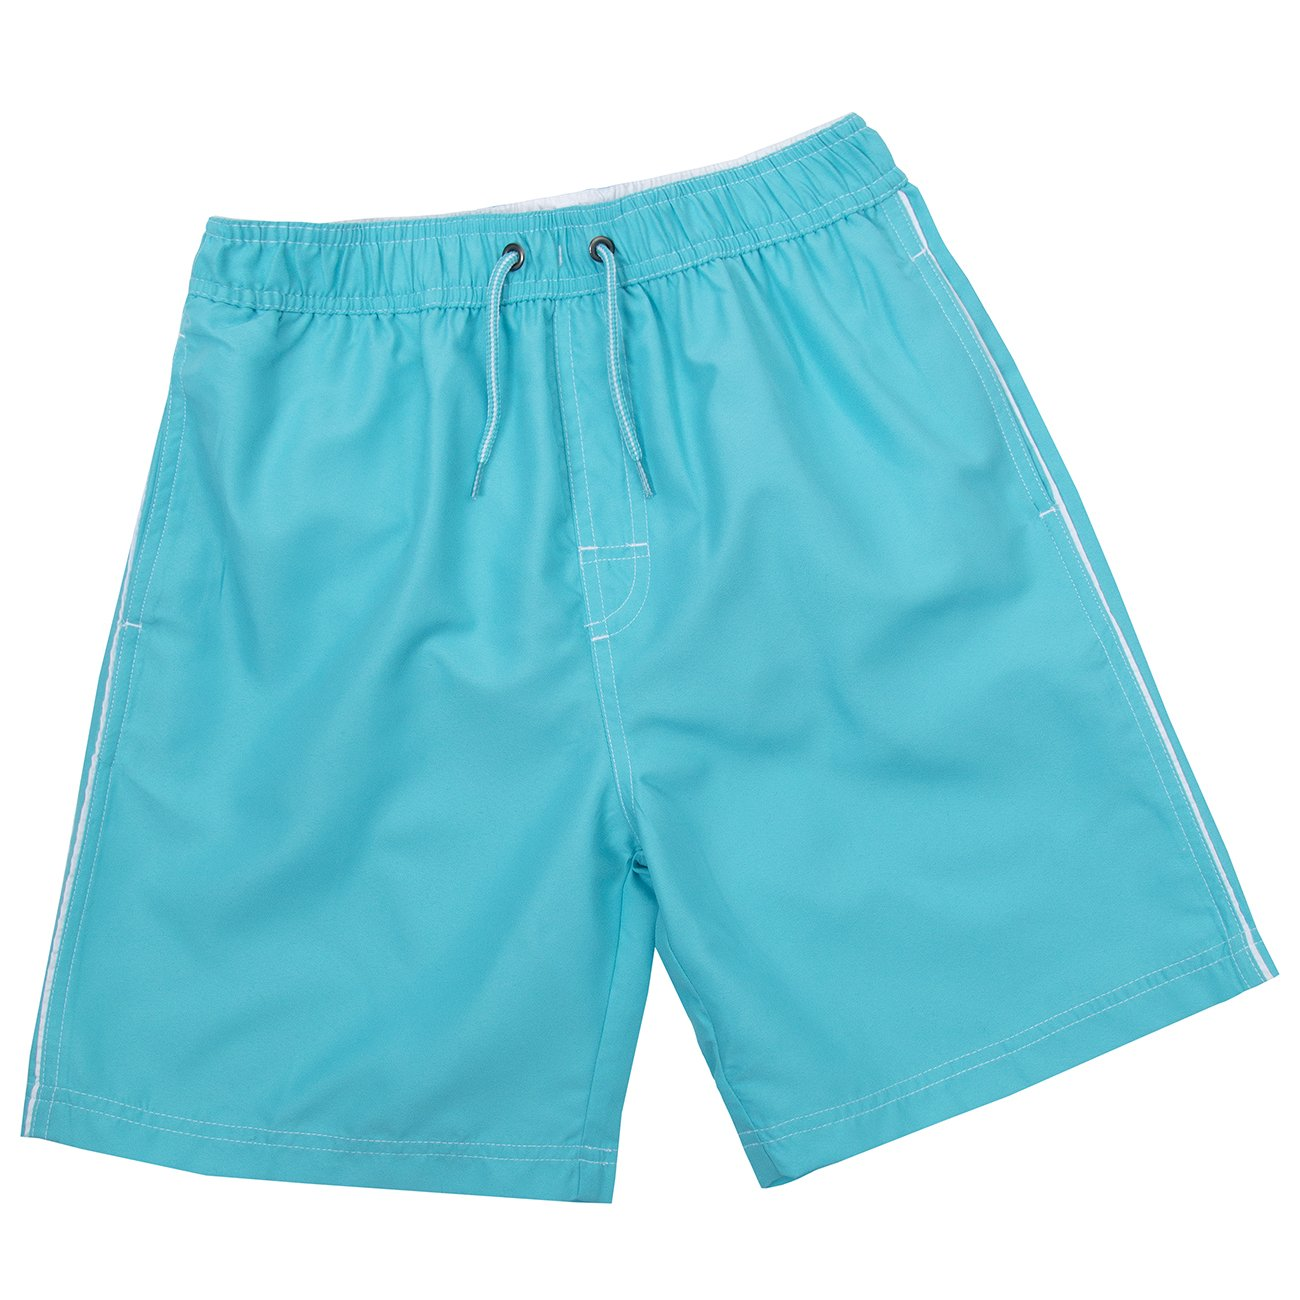 Cargo Bay Infant Boys Colourful Swim Shorts Perfect for Summer Beach Holidays Turquoise 5-6 Years